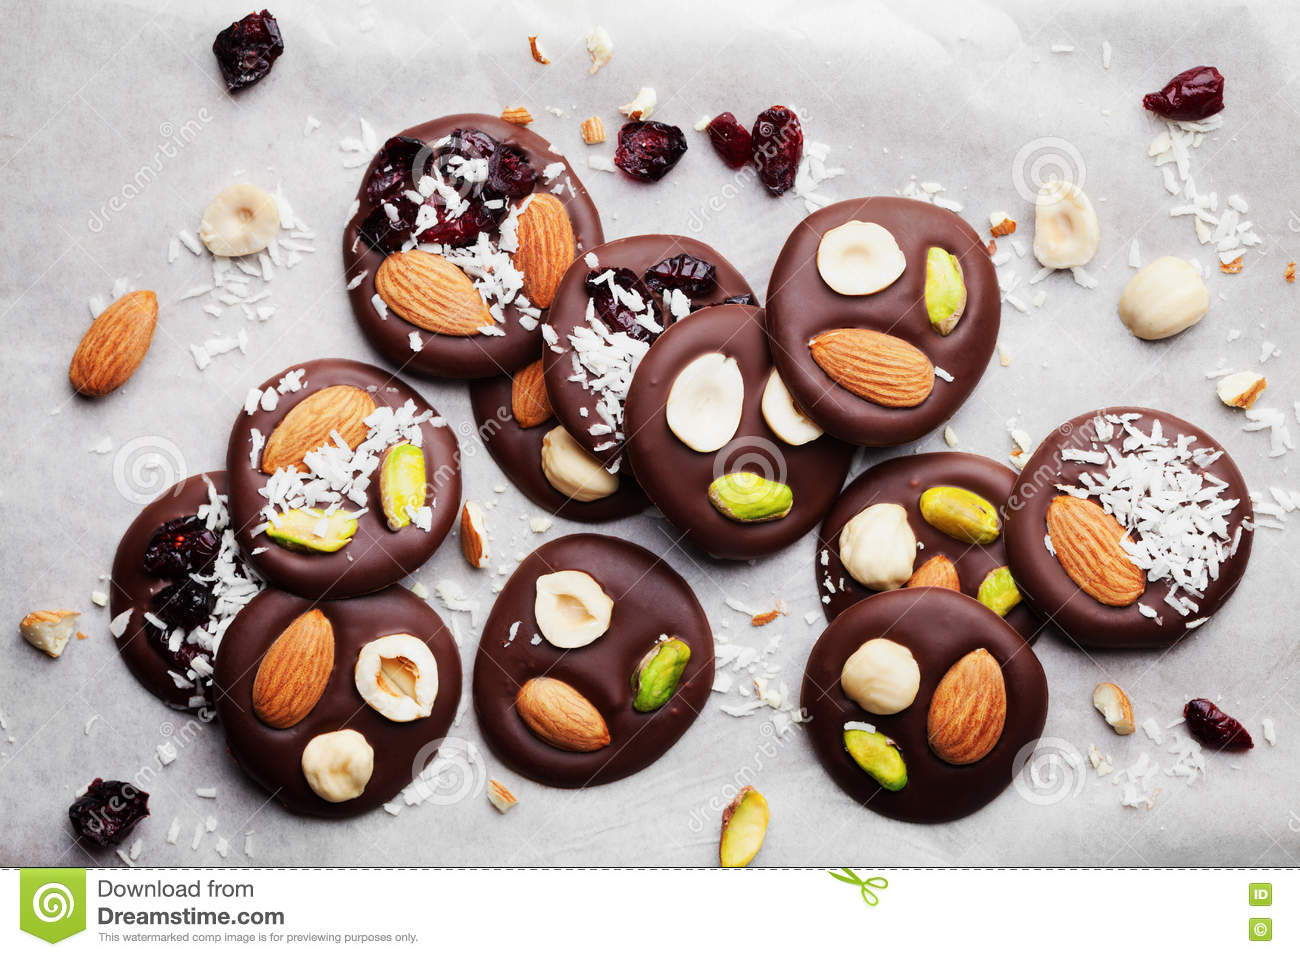 mendiant traditional french chocolate candy for christmas holiday from above homemade dessert with nuts and